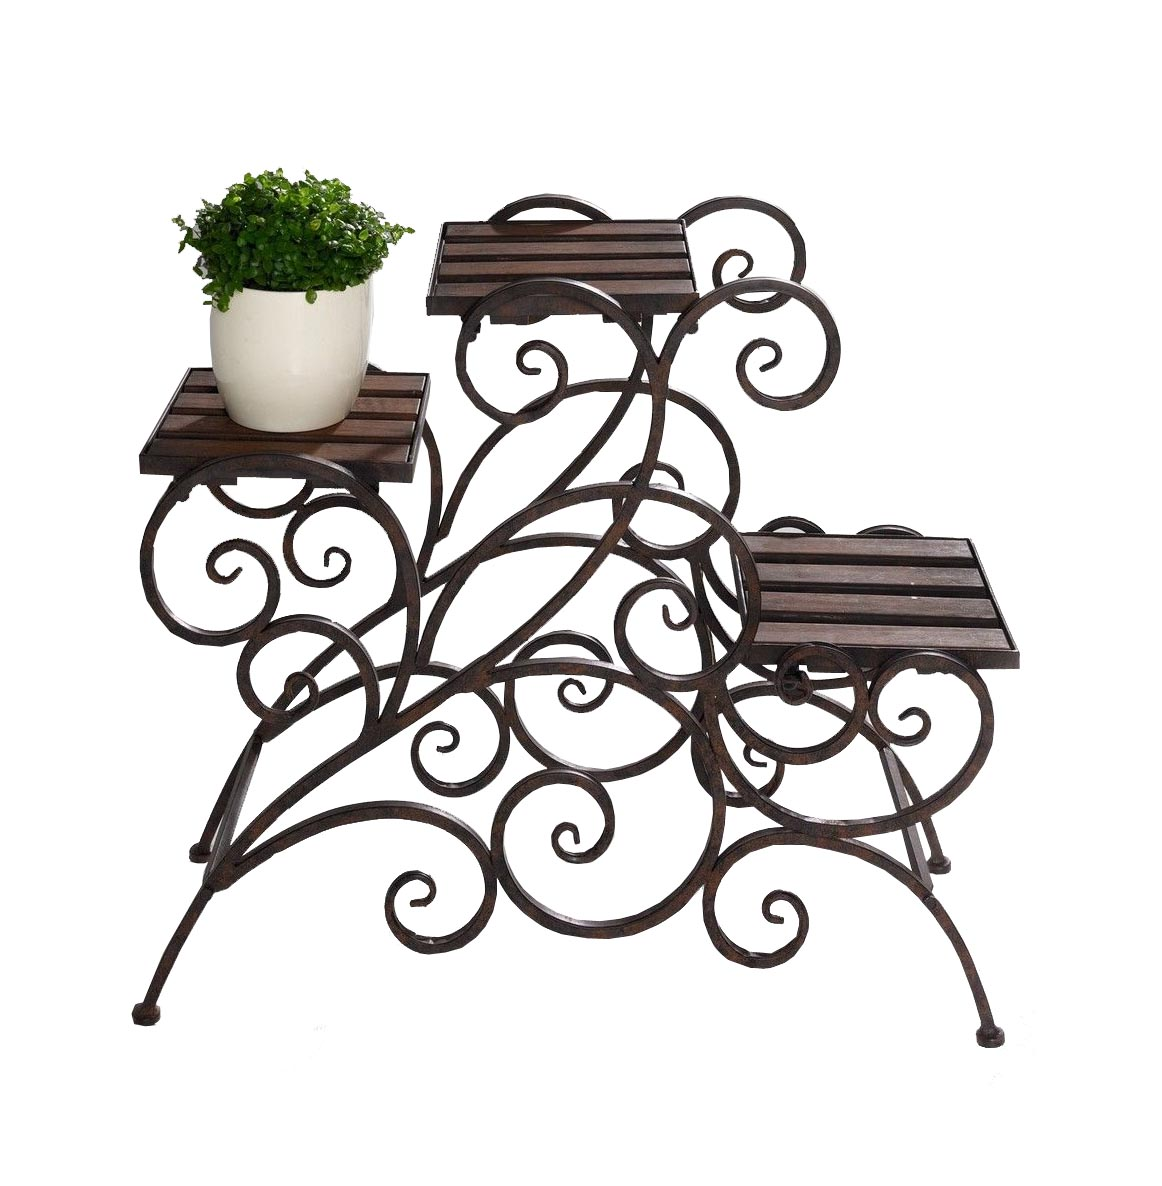 Antique Rustic Metal 3 Stairs Flower / Plant Stand Wood T...